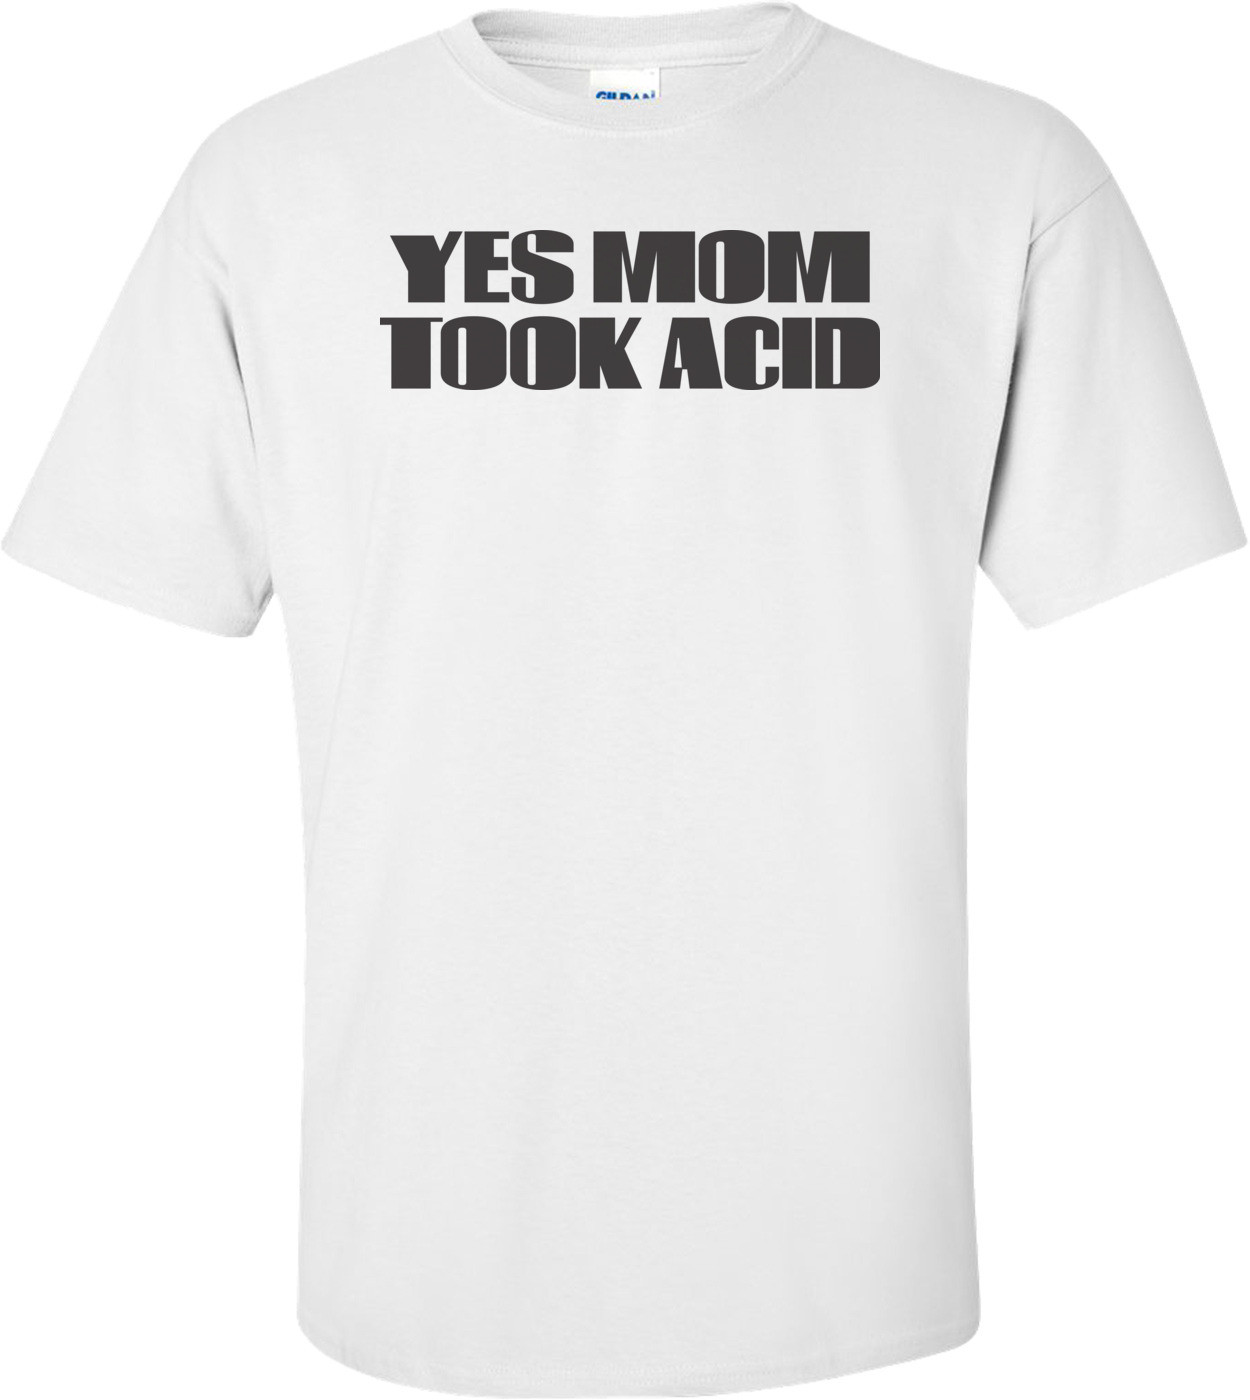 Yes Mom Took Acid Shirt